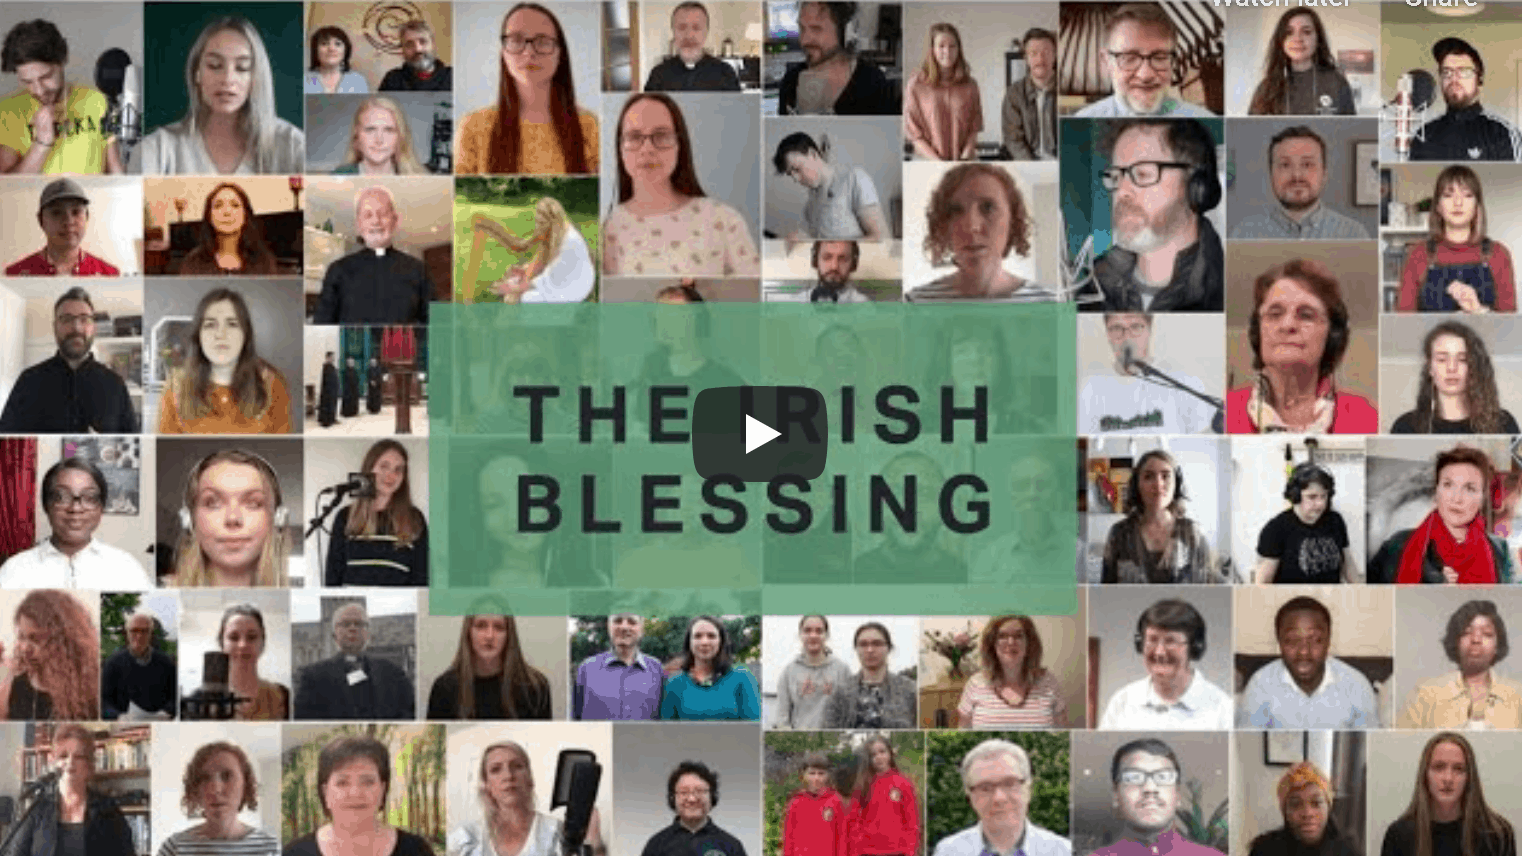 Irish blessing over 300 churches accross every county in Ireland